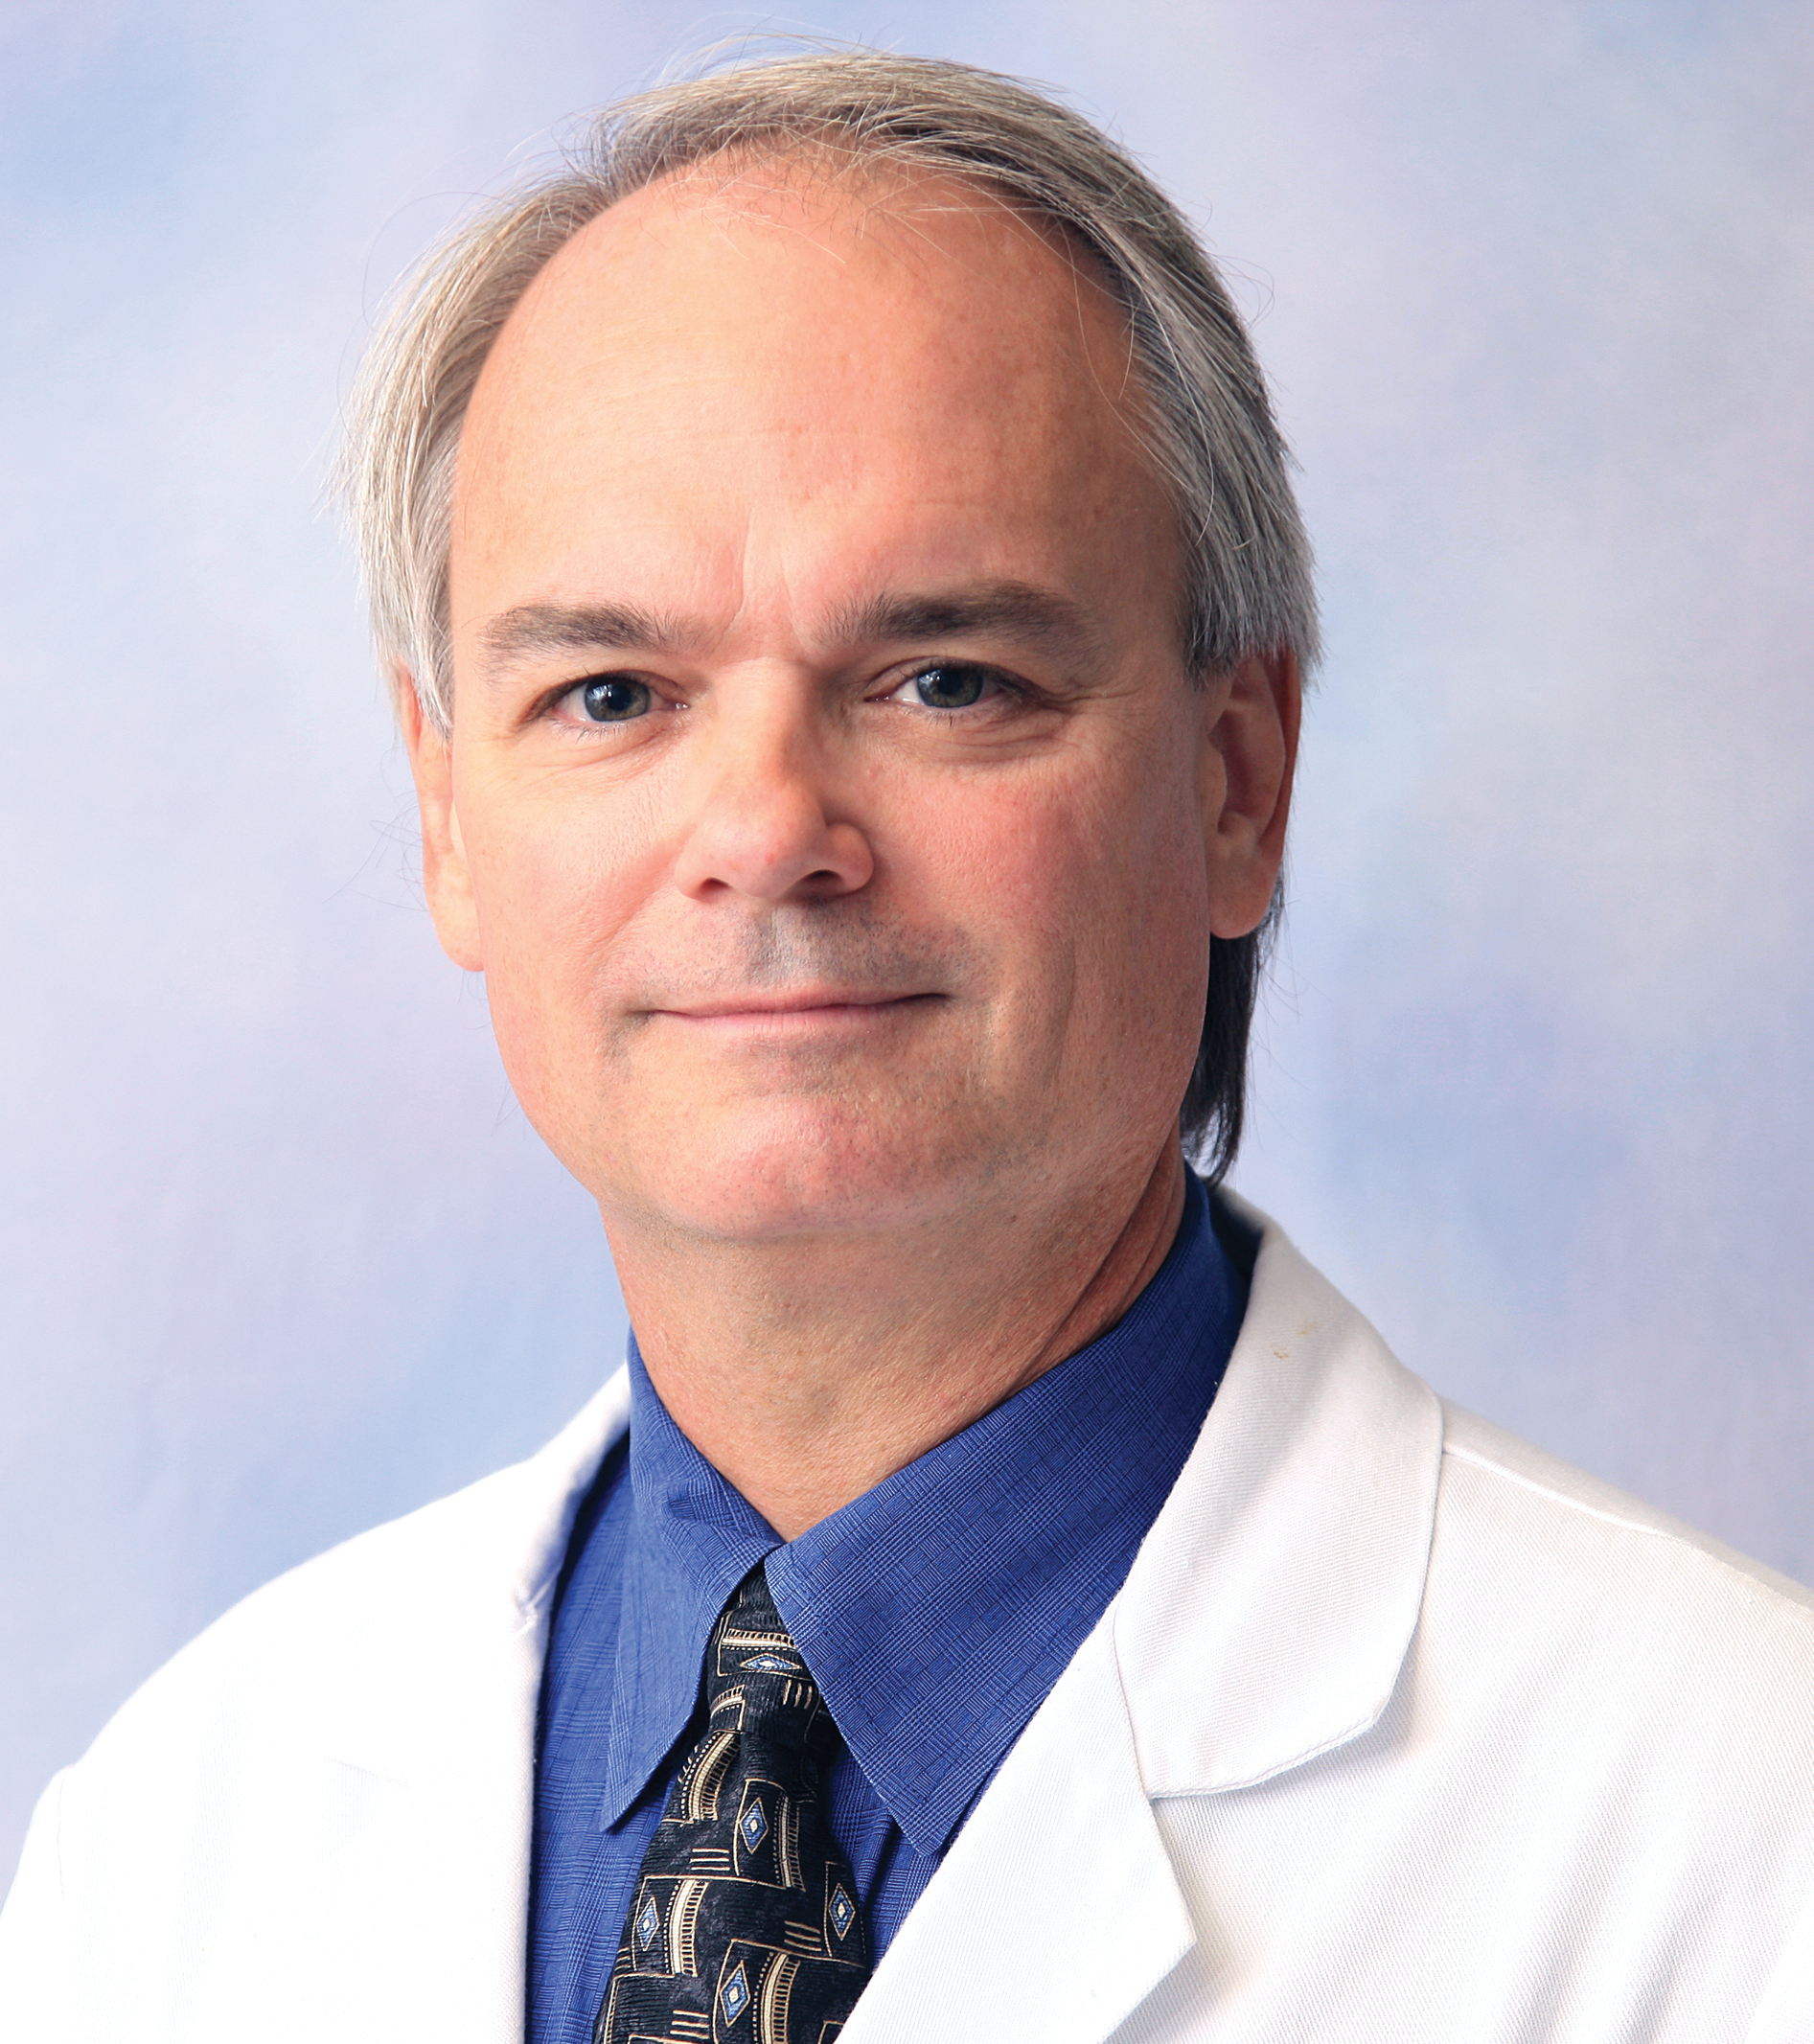 James W. Cox, MD, FACC